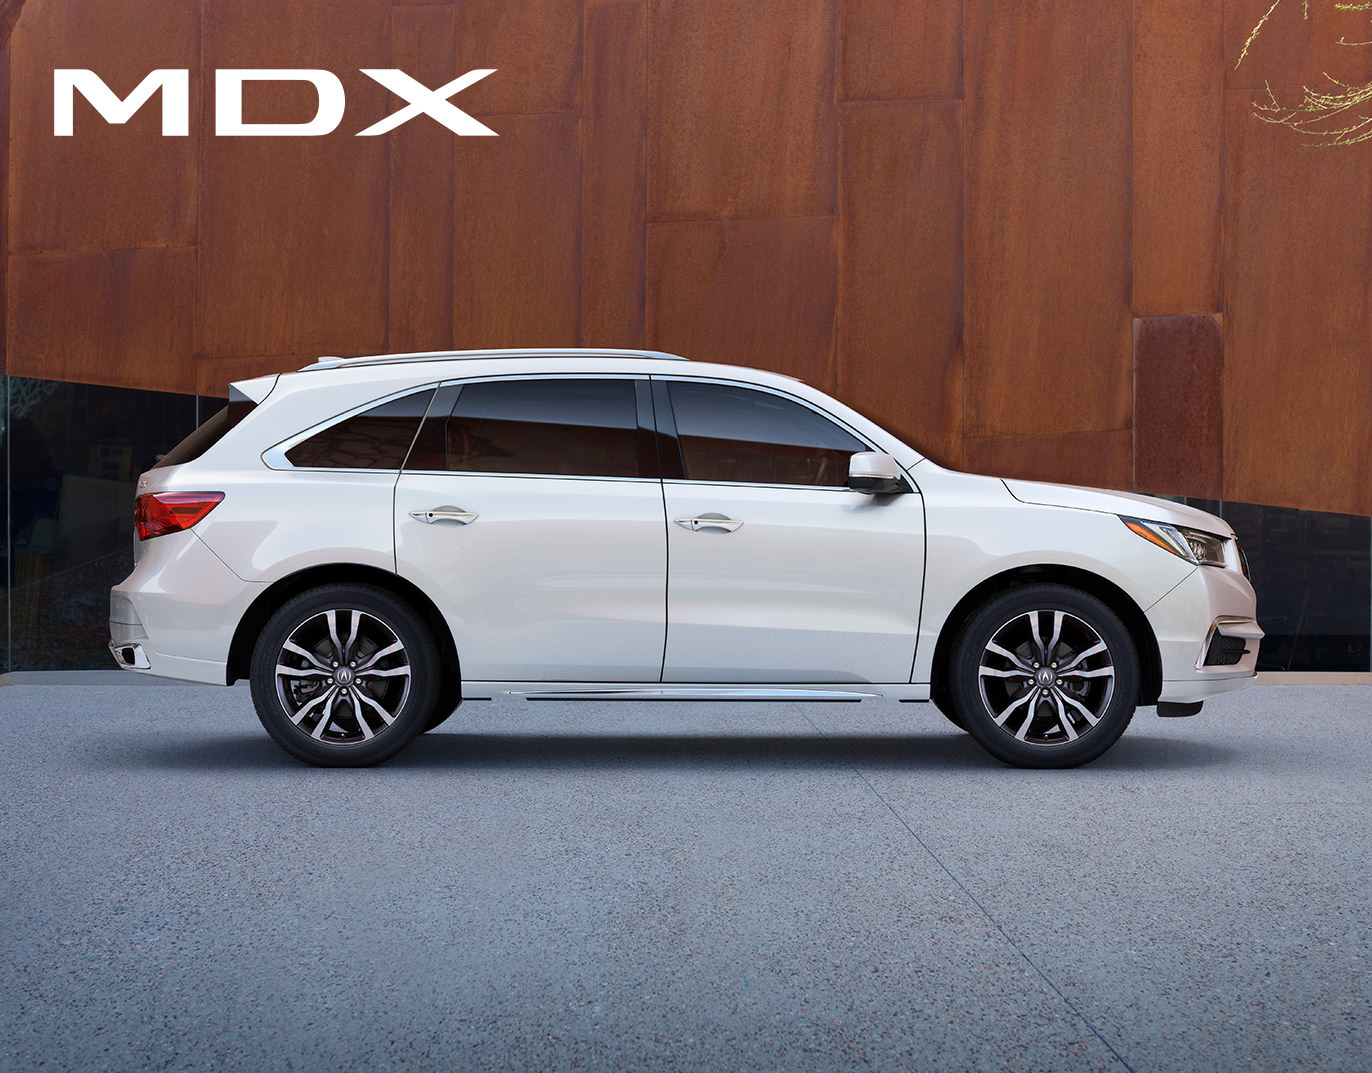 Acura MDX Luxury Third Row SUV Acuracom - 2018 acura mdx price